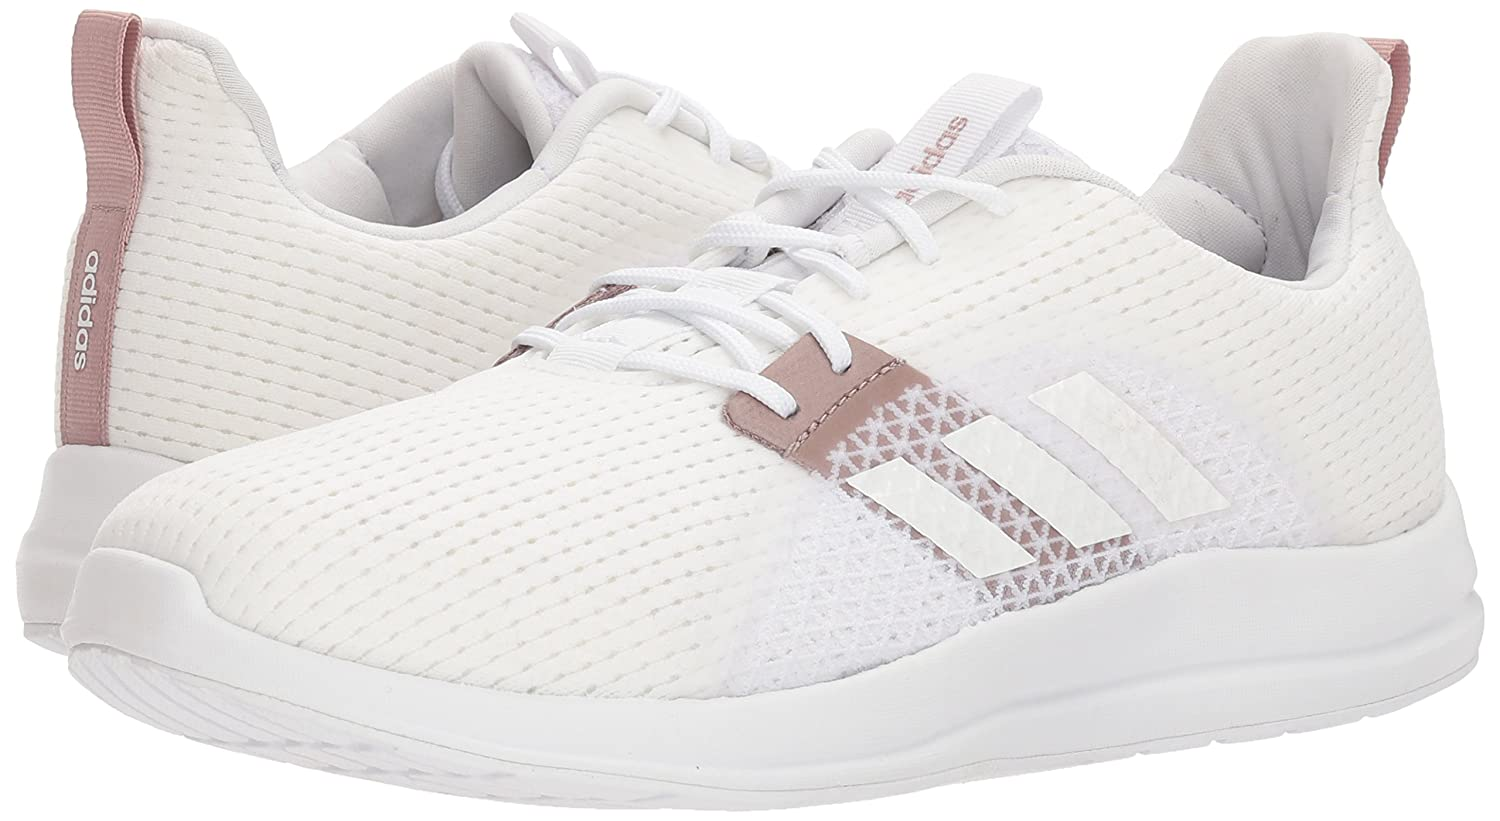 adidas Women's Element V Running Shoe B071S6C55S 8.5 B(M) US|White/White/White Tint